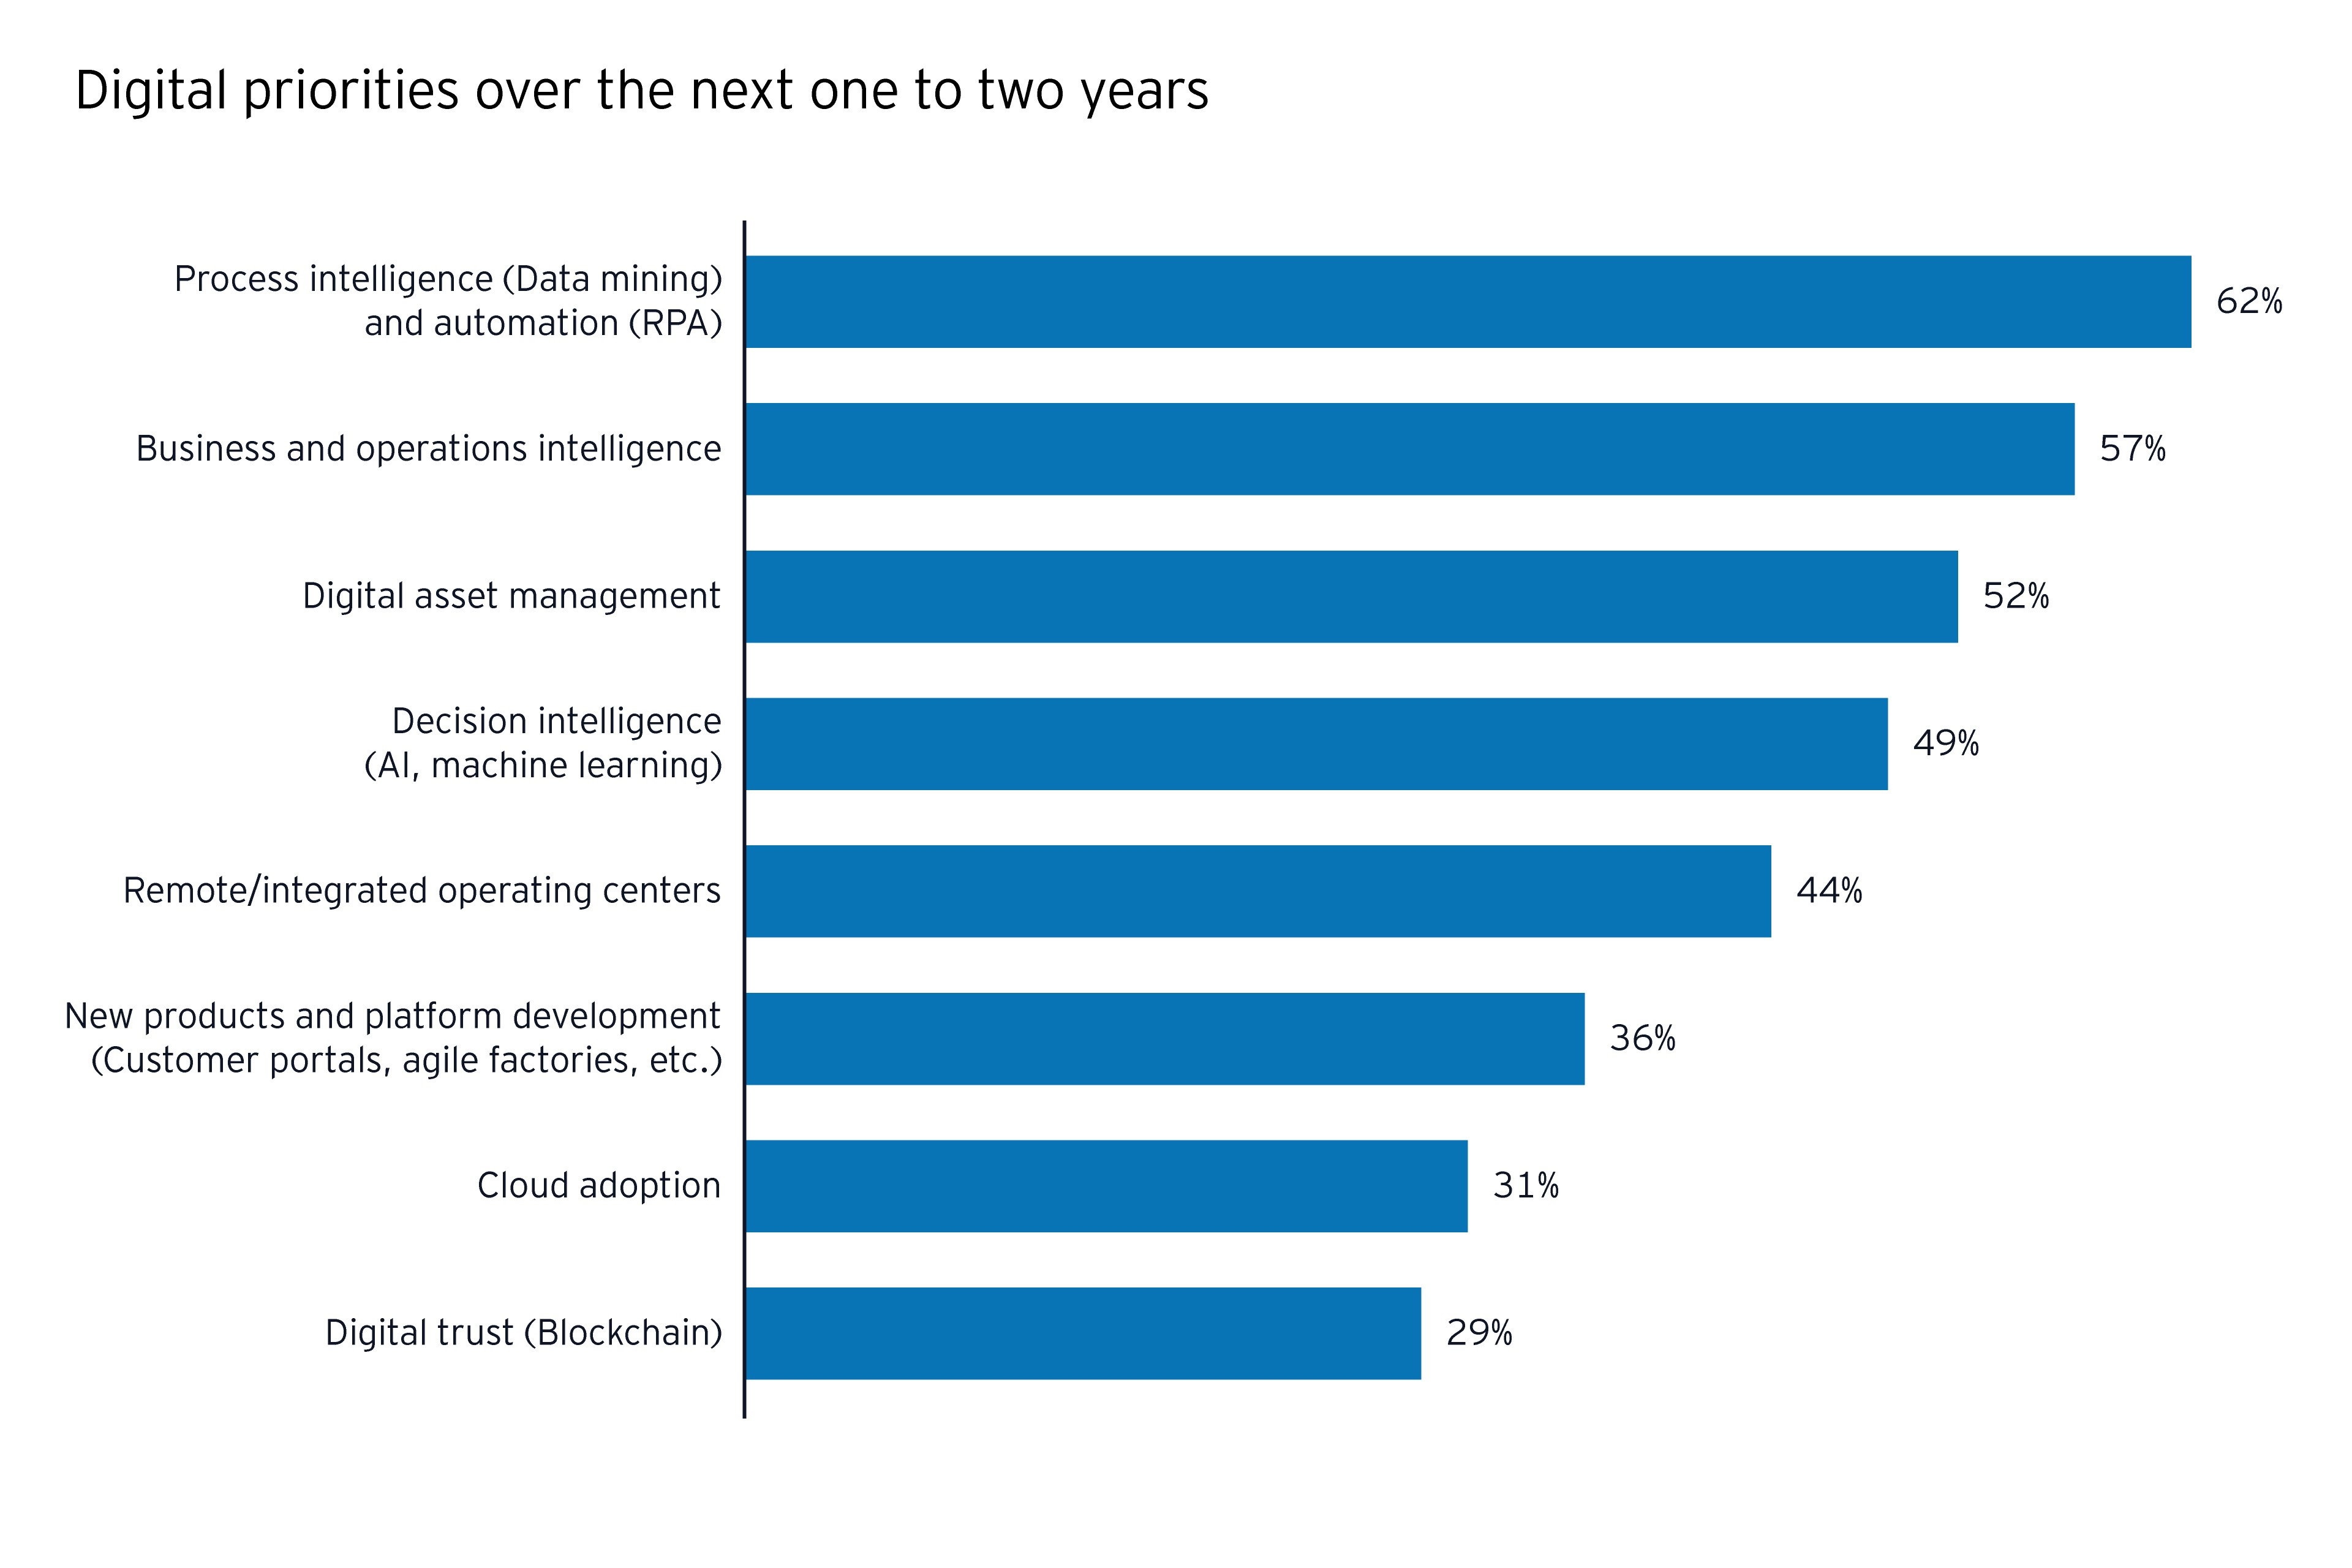 Digital priorities over the next one to two years